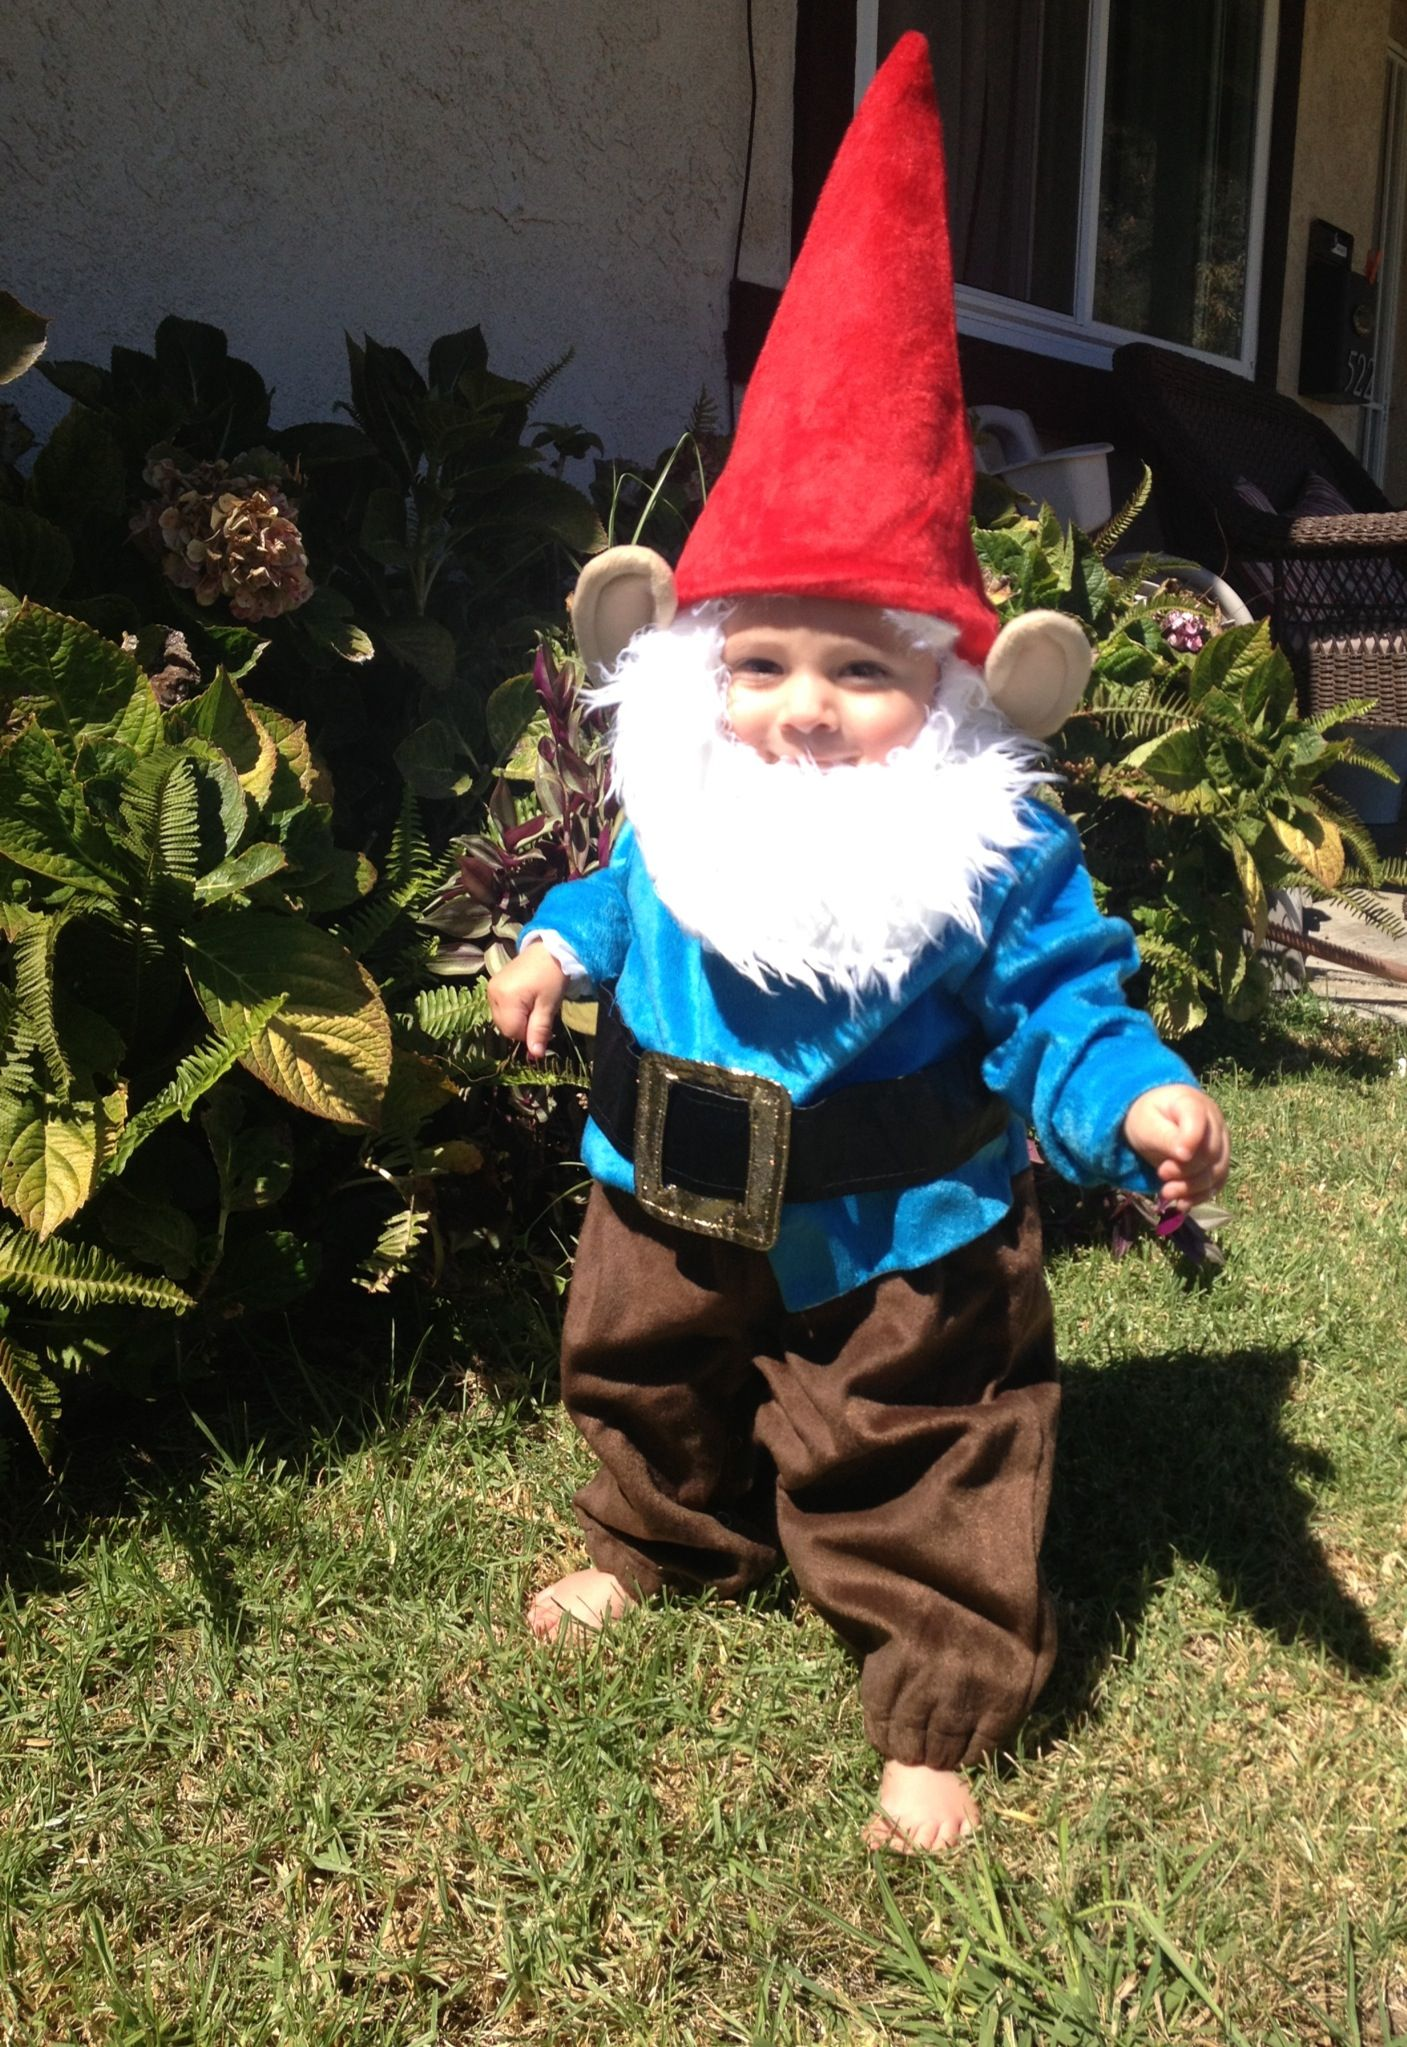 cisco bum the garden gnome 10 months old his first halloween costume